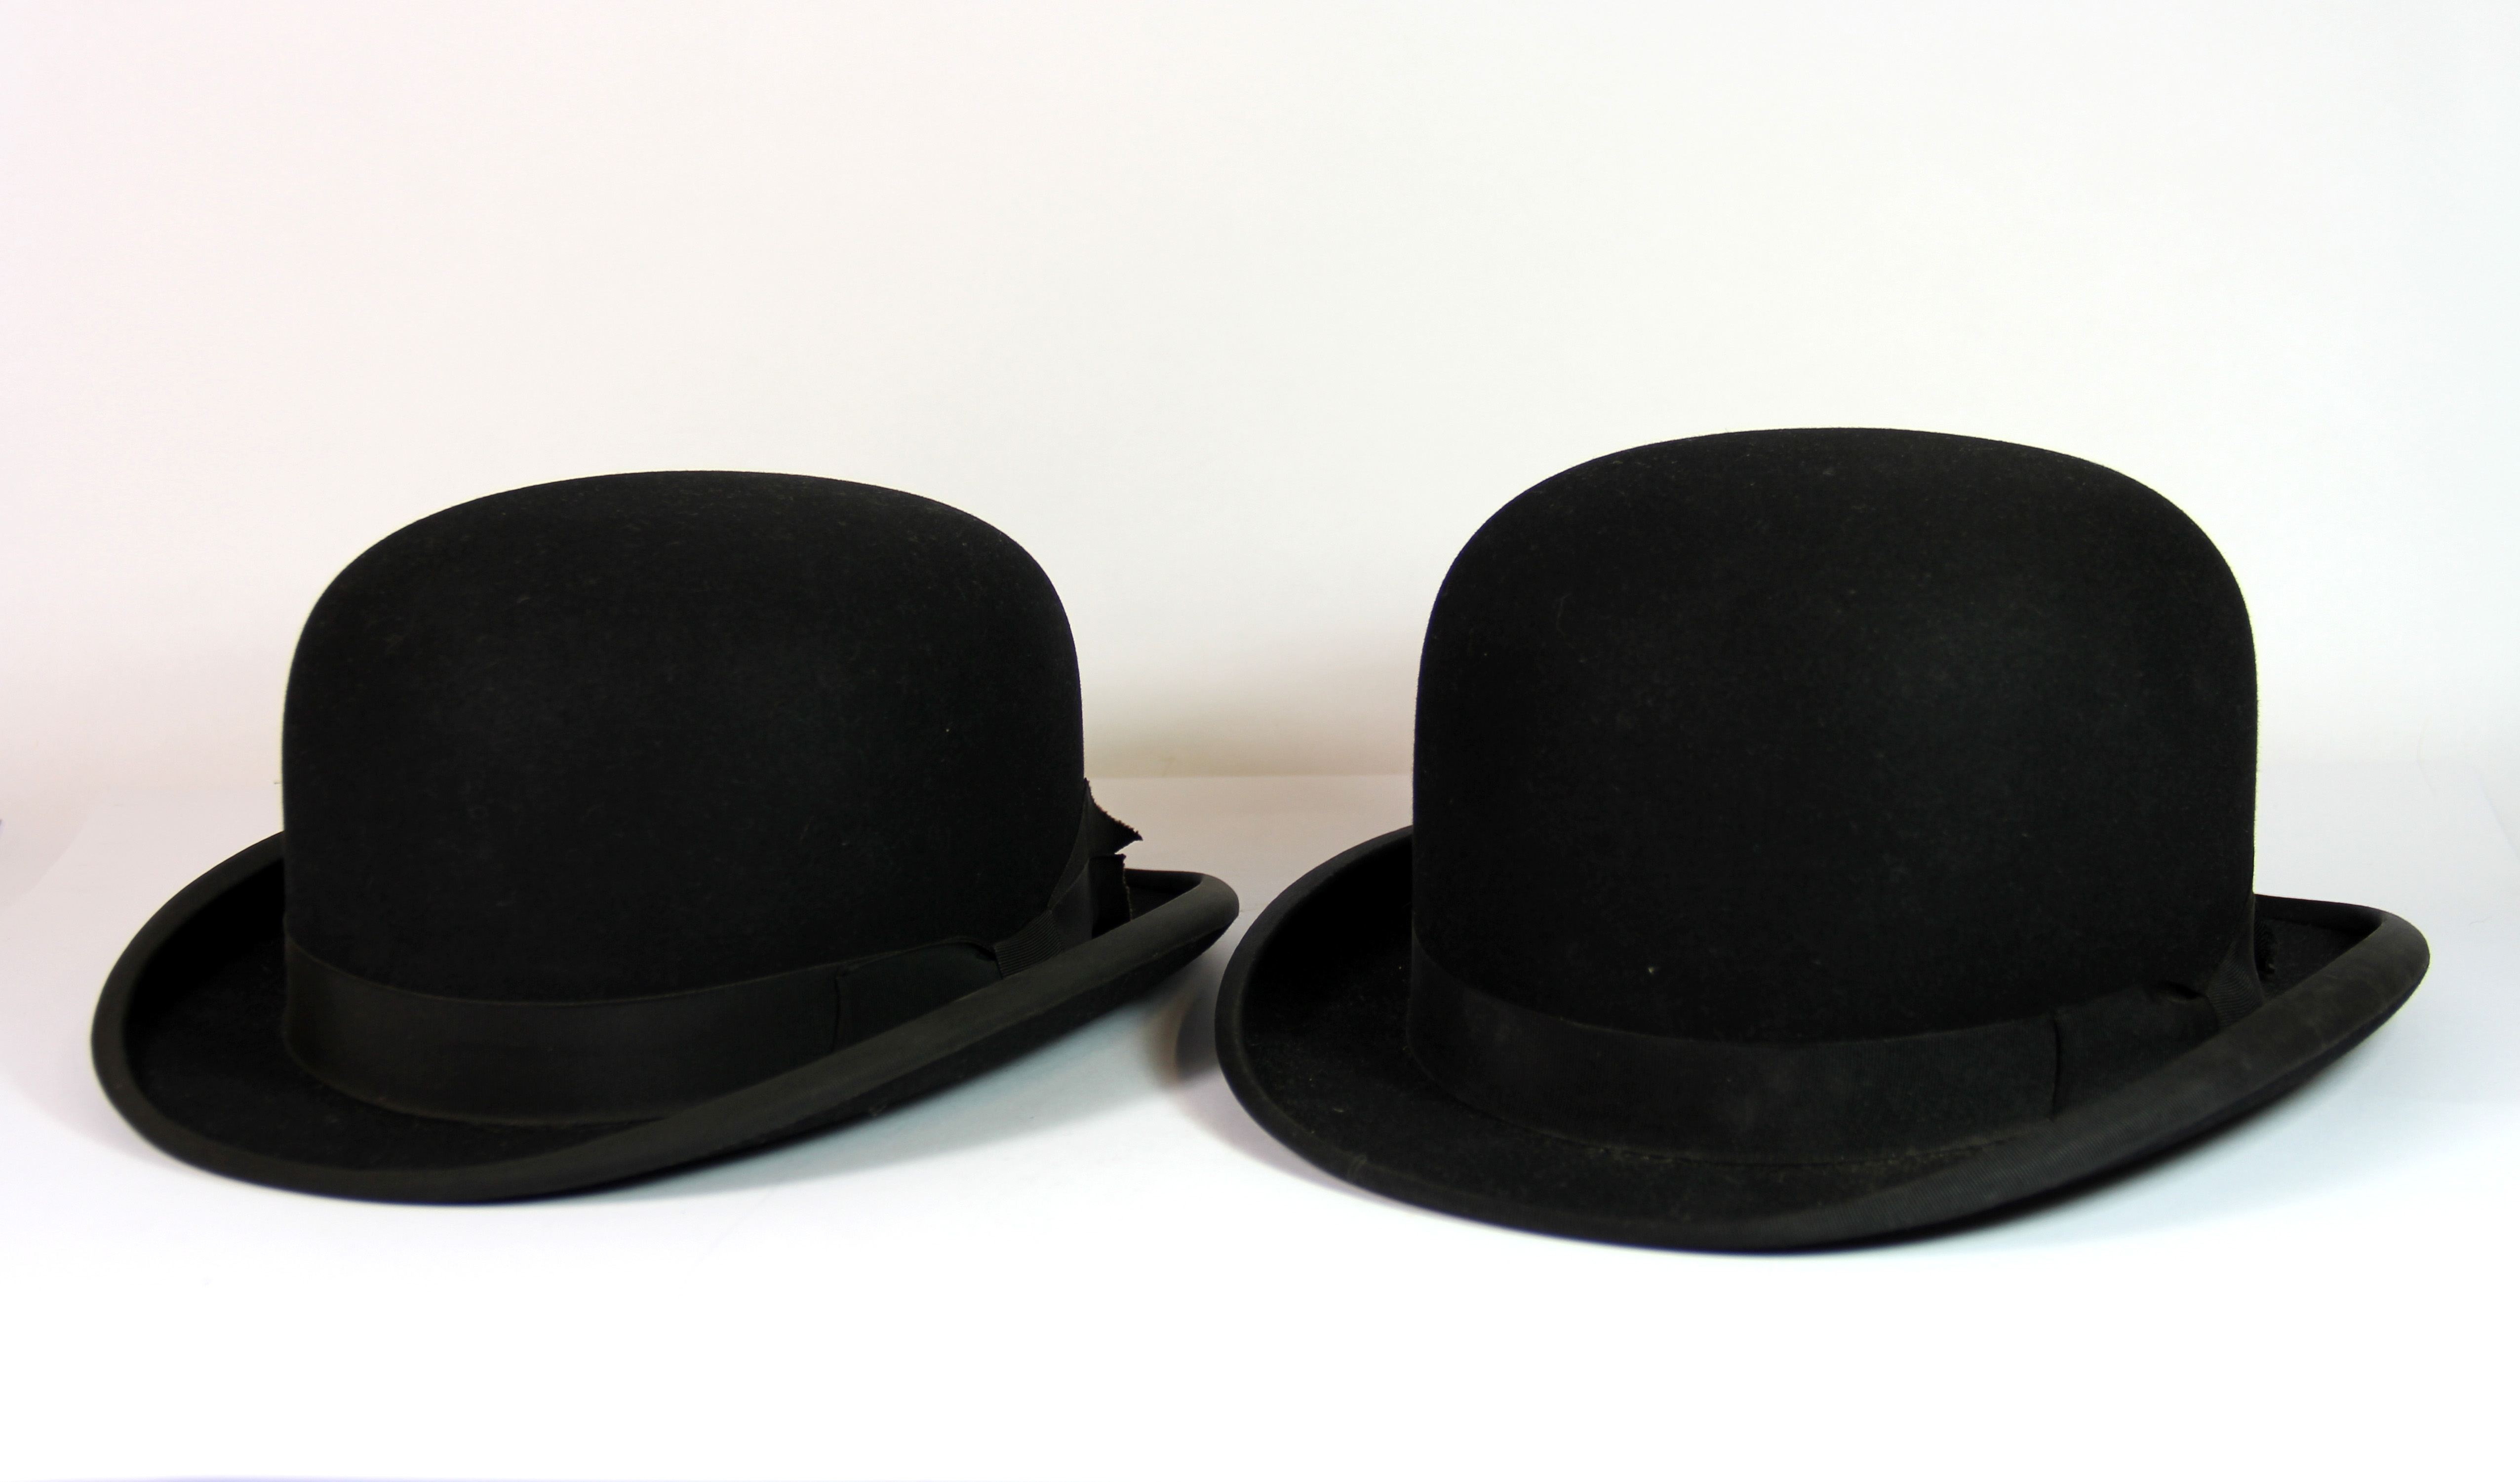 c3cf51055f0 Two vintage bowler hats